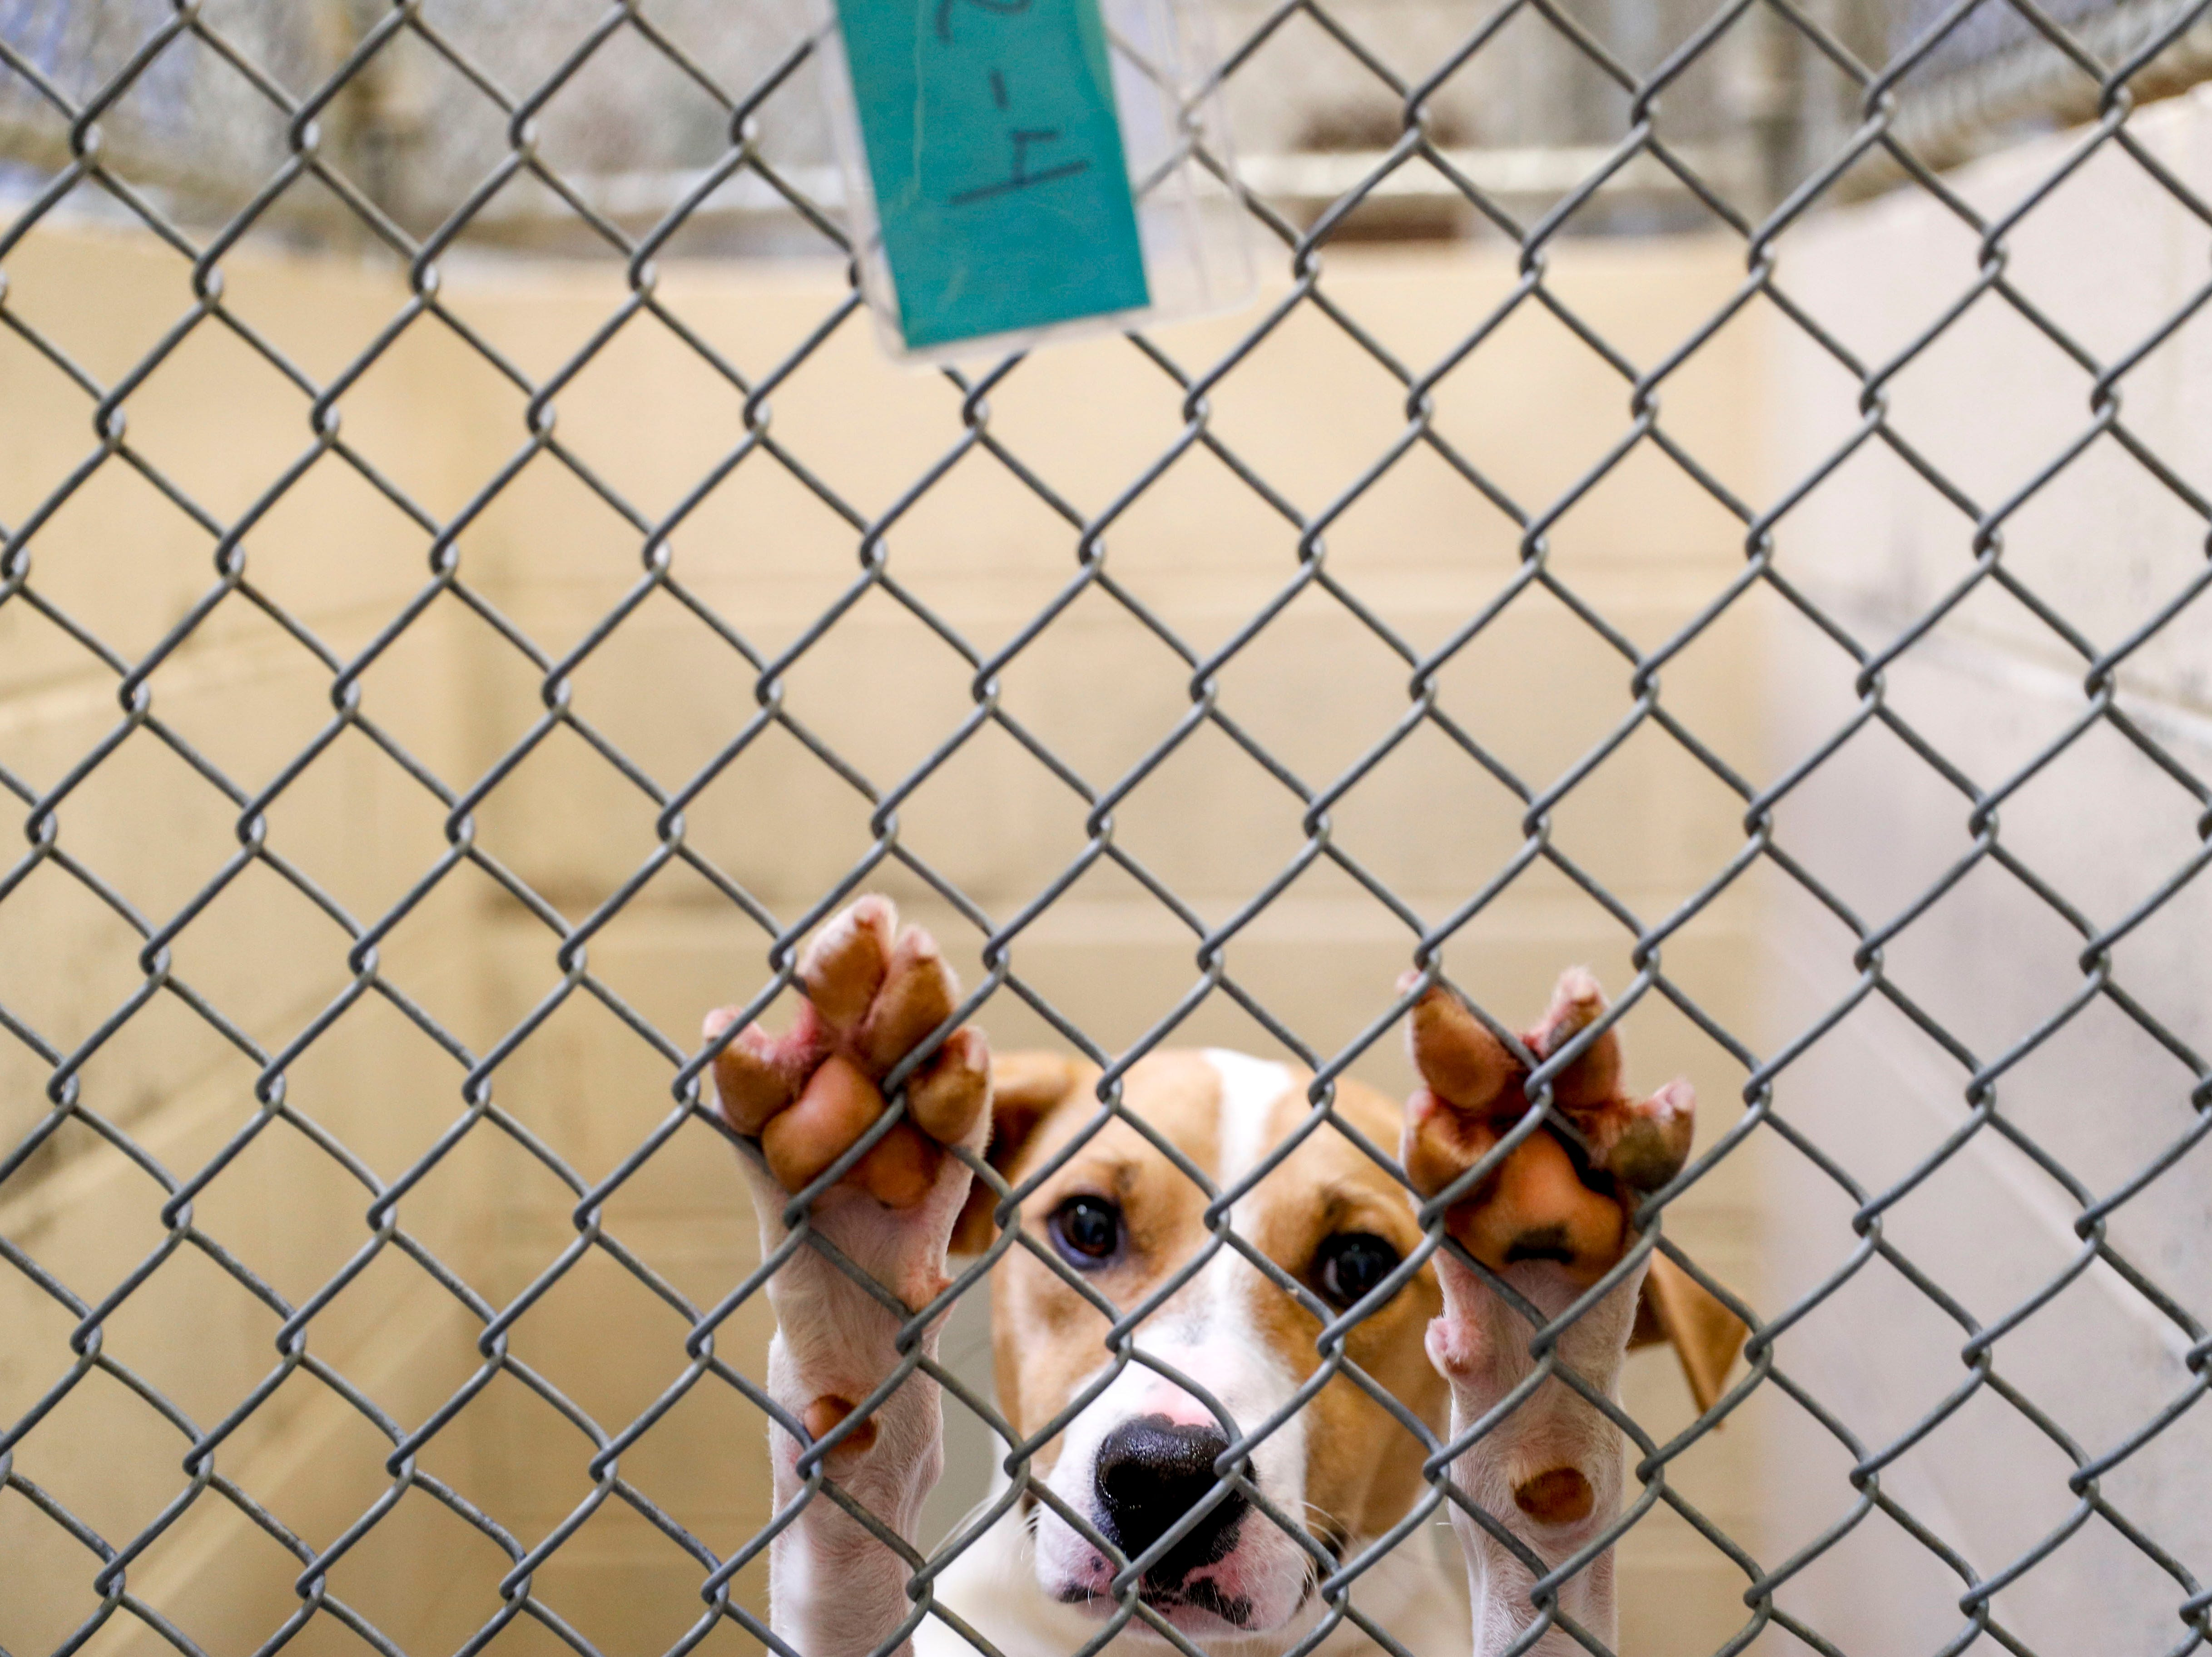 Buddy, a mixed breed, reaches up at the fenced part of his kennel while awaiting a new owner at Montgomery County Animal Care and Control in Clarksville, Tenn., on Wednesday, March 13, 2019.